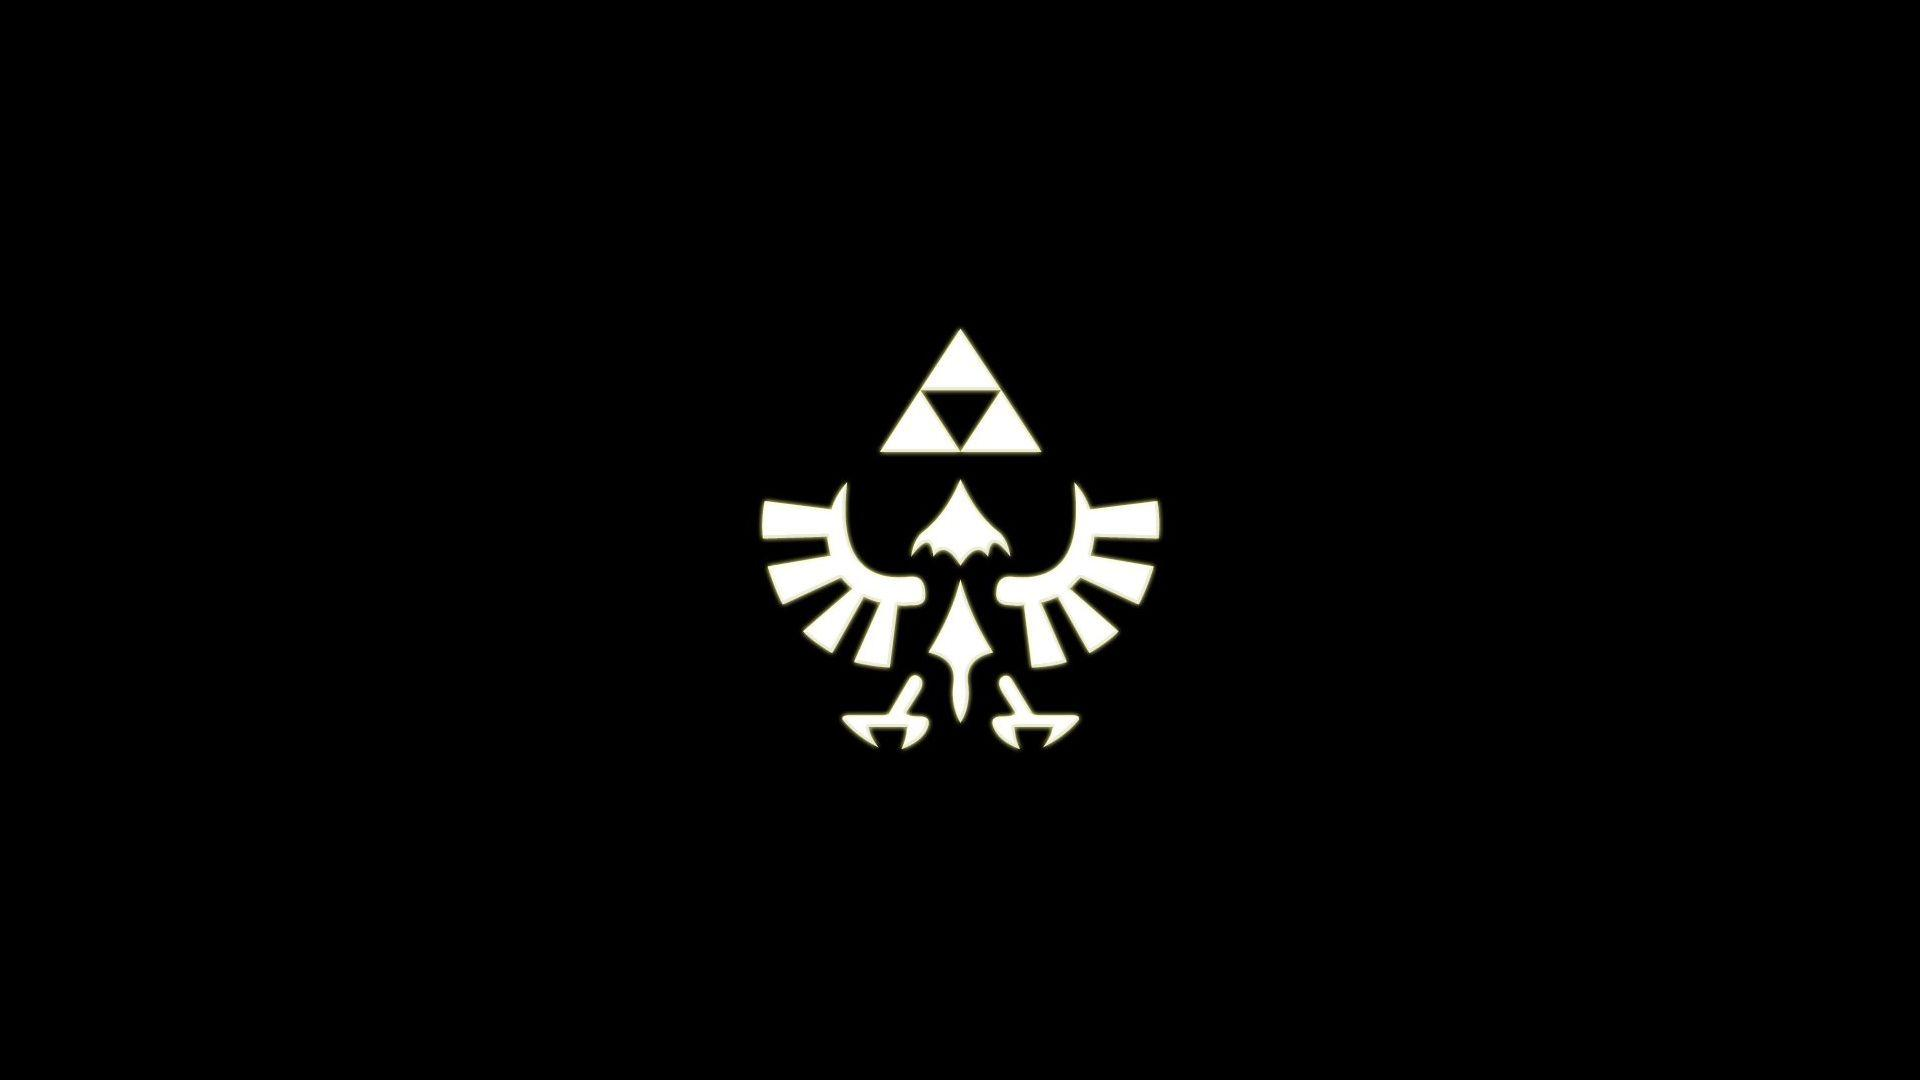 Download Triforce The Wallpapers 1920x1080